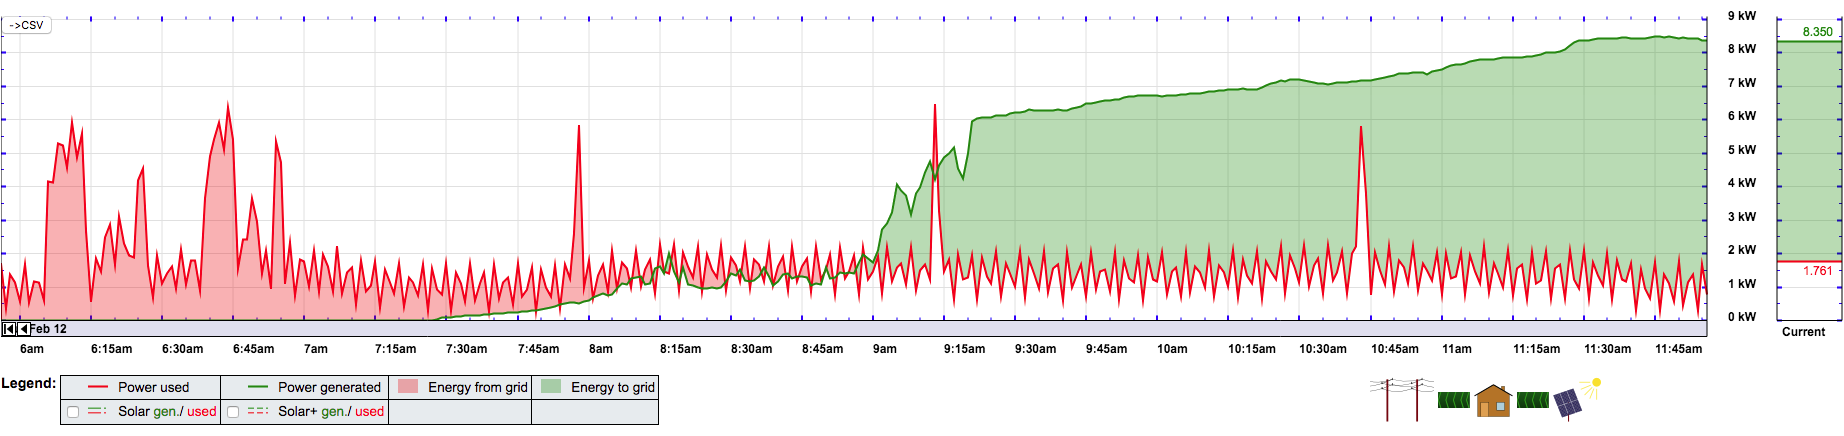 Solar-Lightgauge data monitoring over a 6 hour period